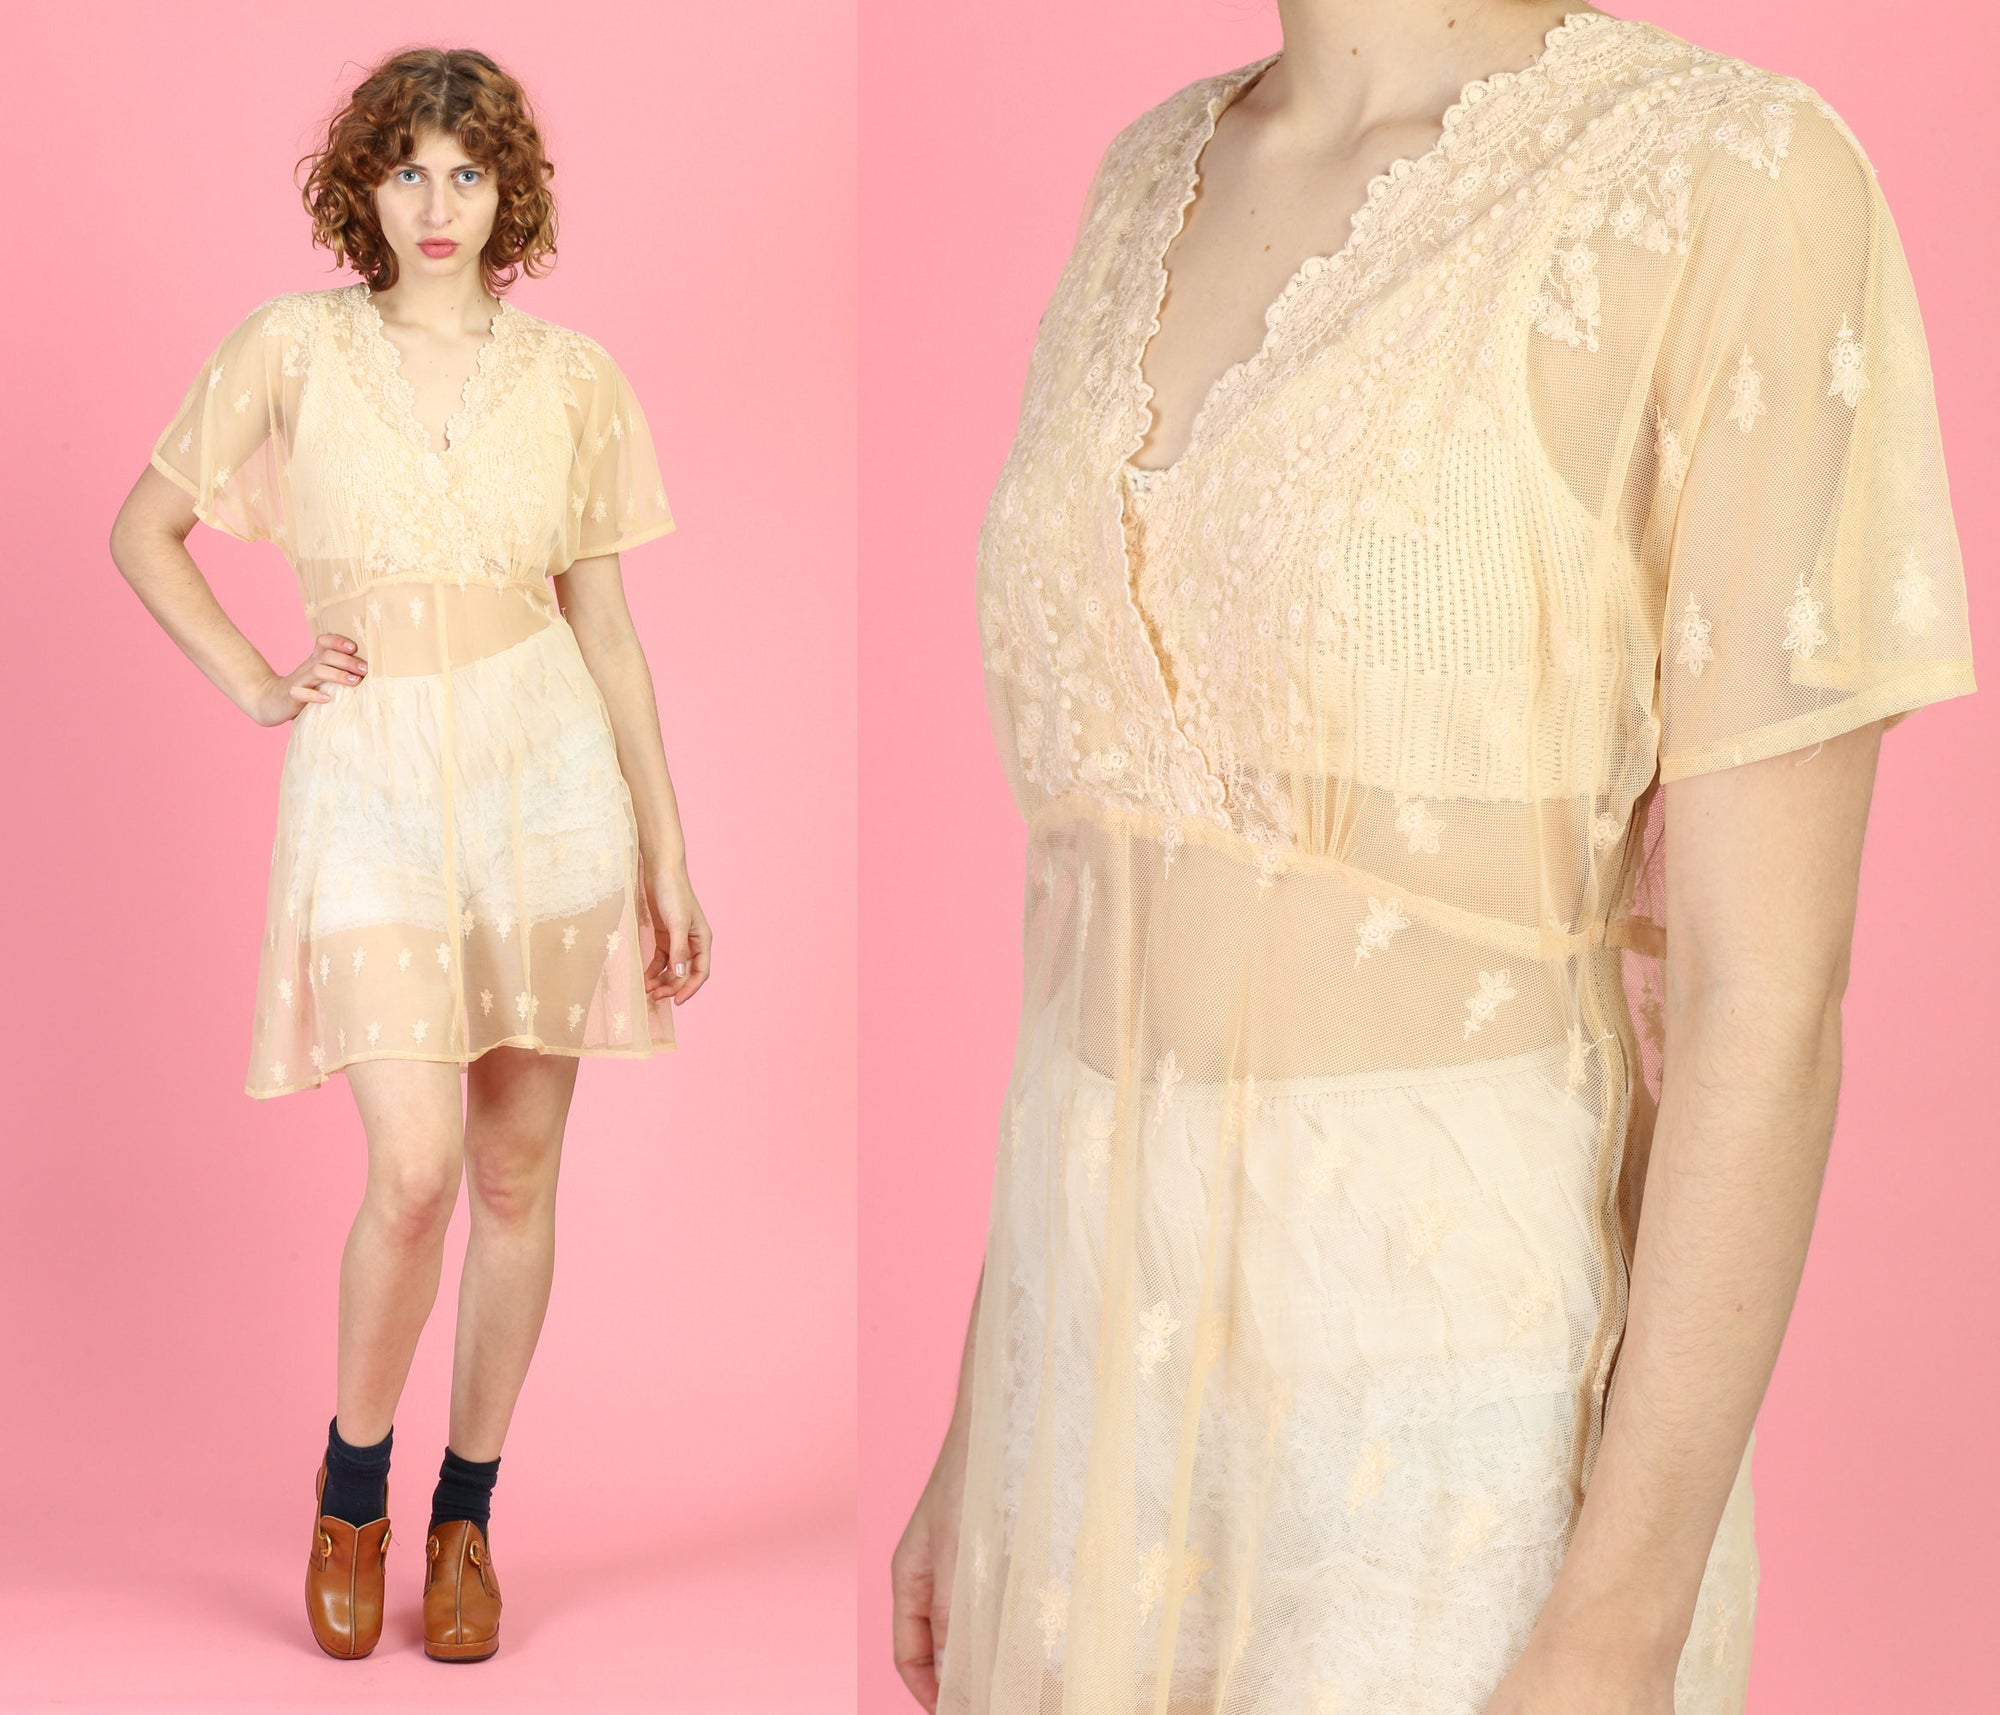 Vintage Peach Sheer Lace Festival Dress - Large to XL